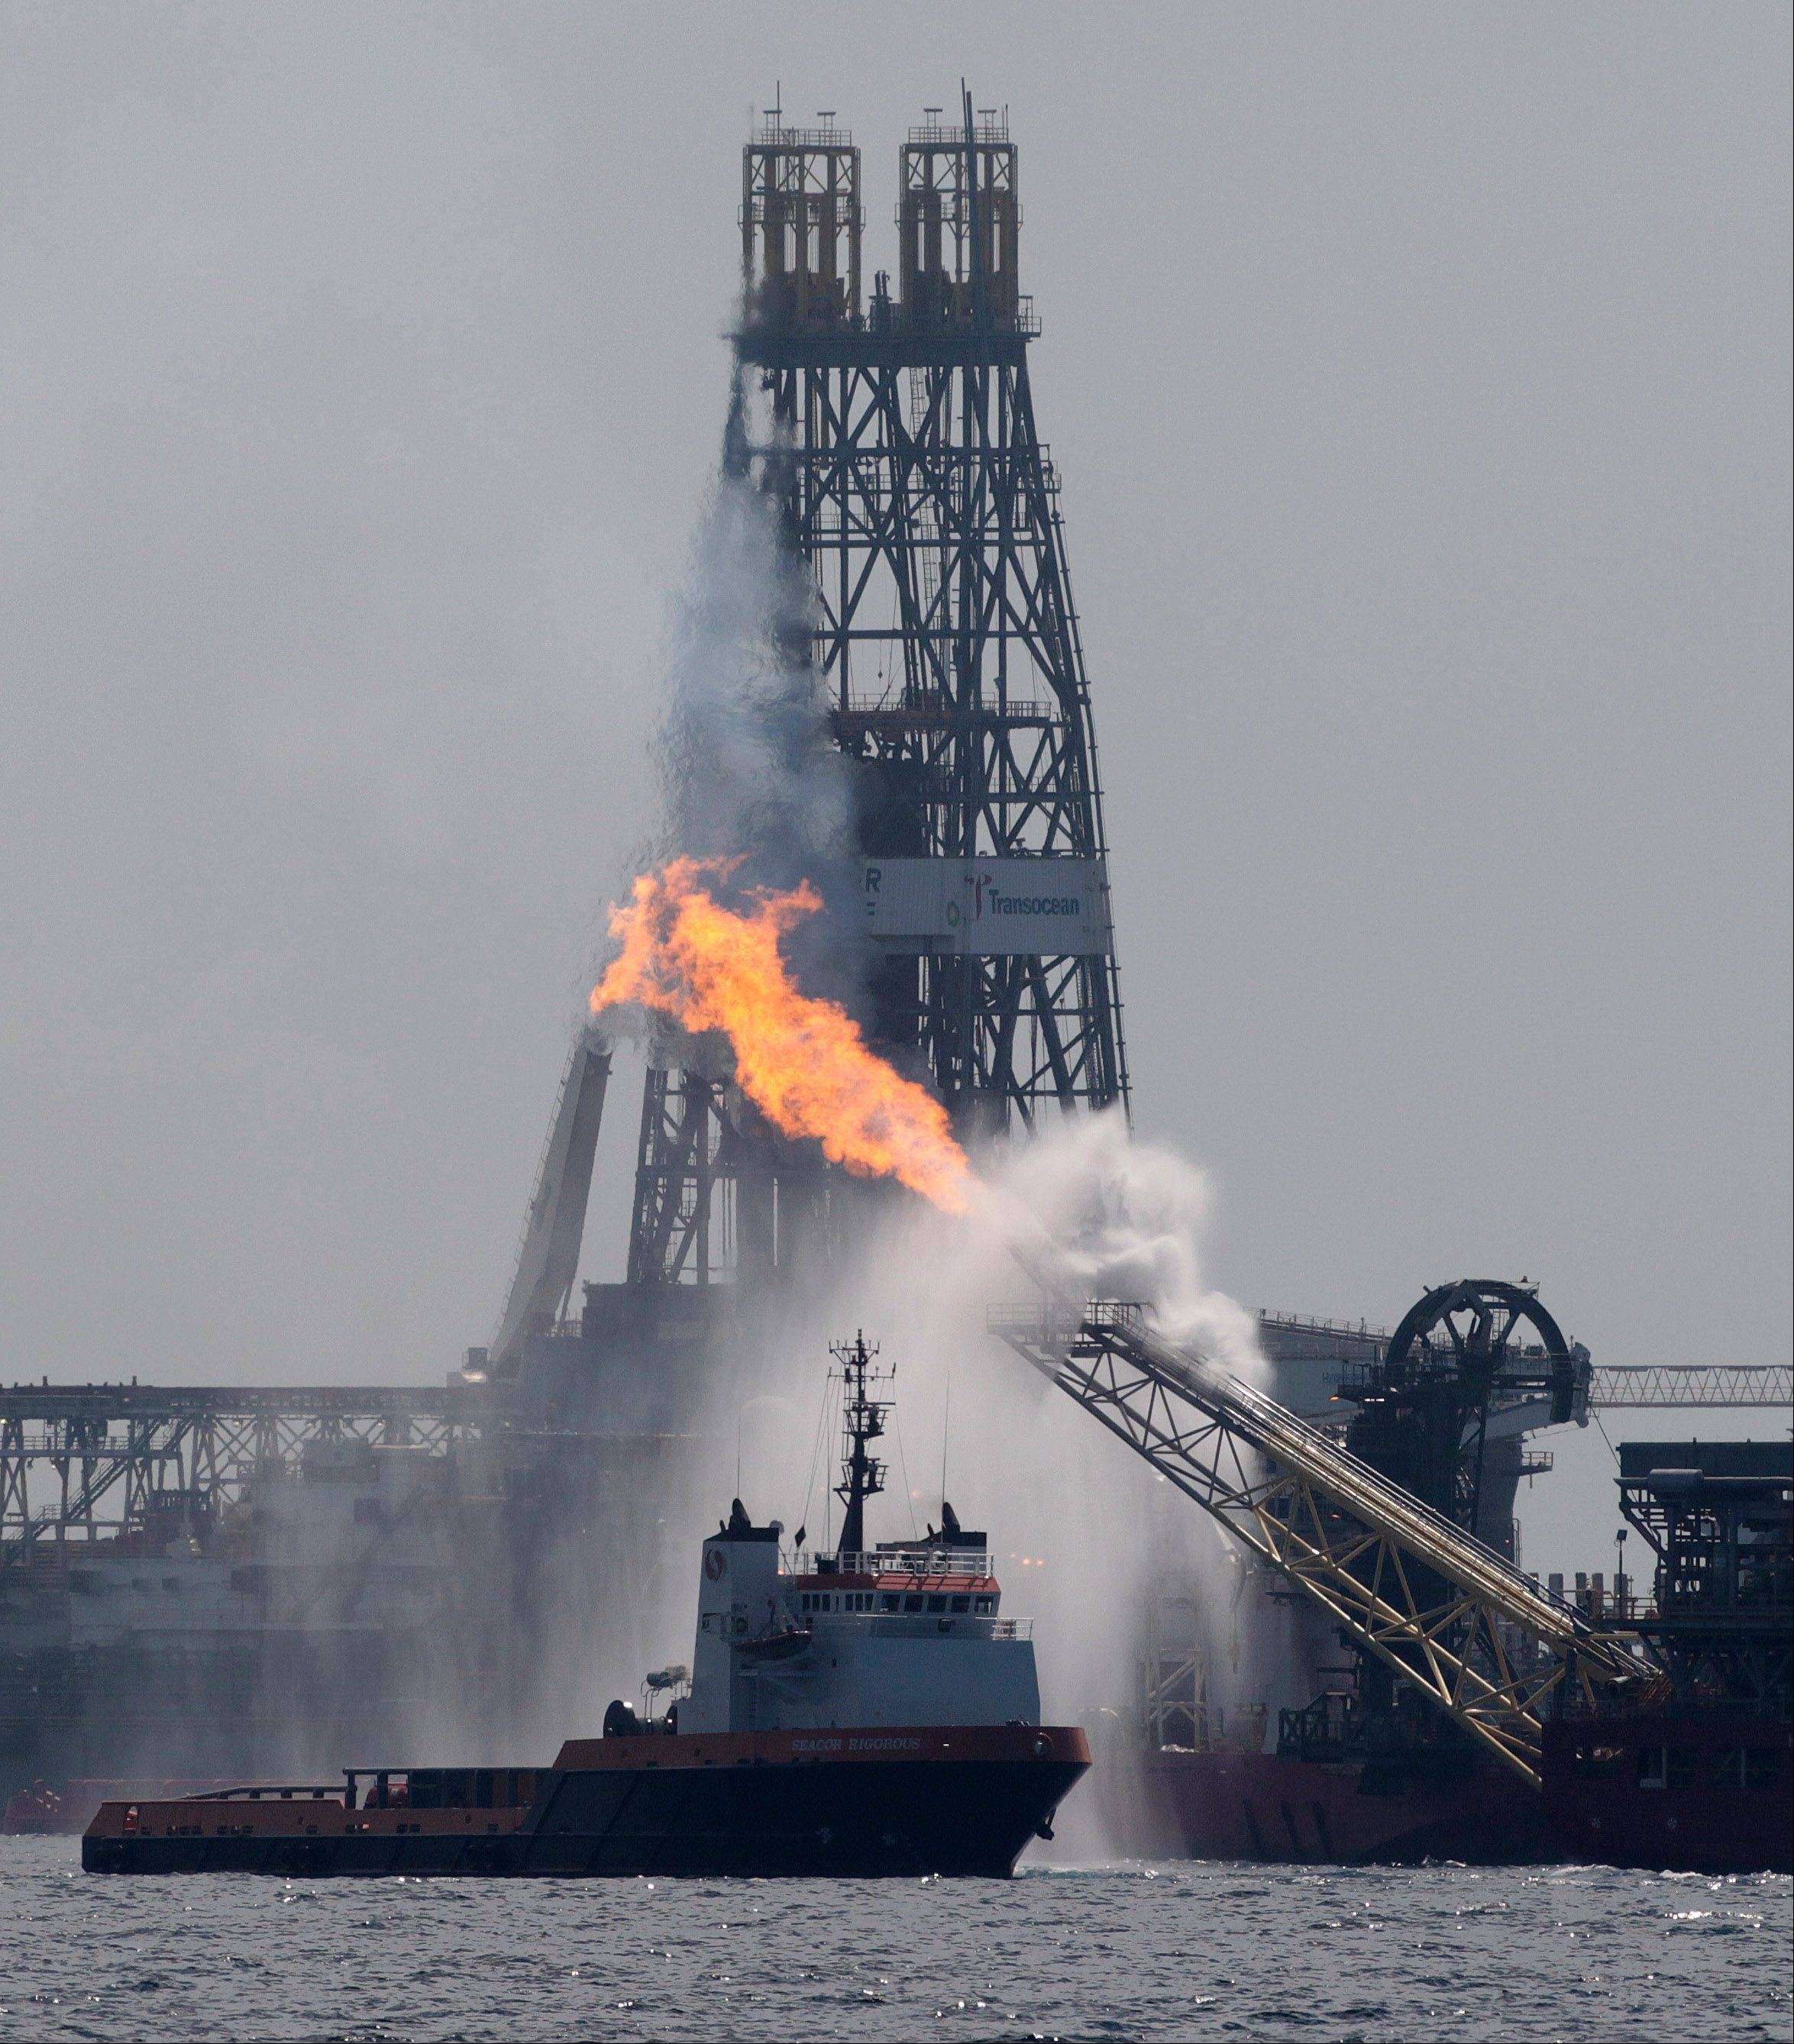 BP Plc reached a settlement with the U.S. Department of Justice for $4 billion to end all criminal charges relating to the worst U.S. oil spill.